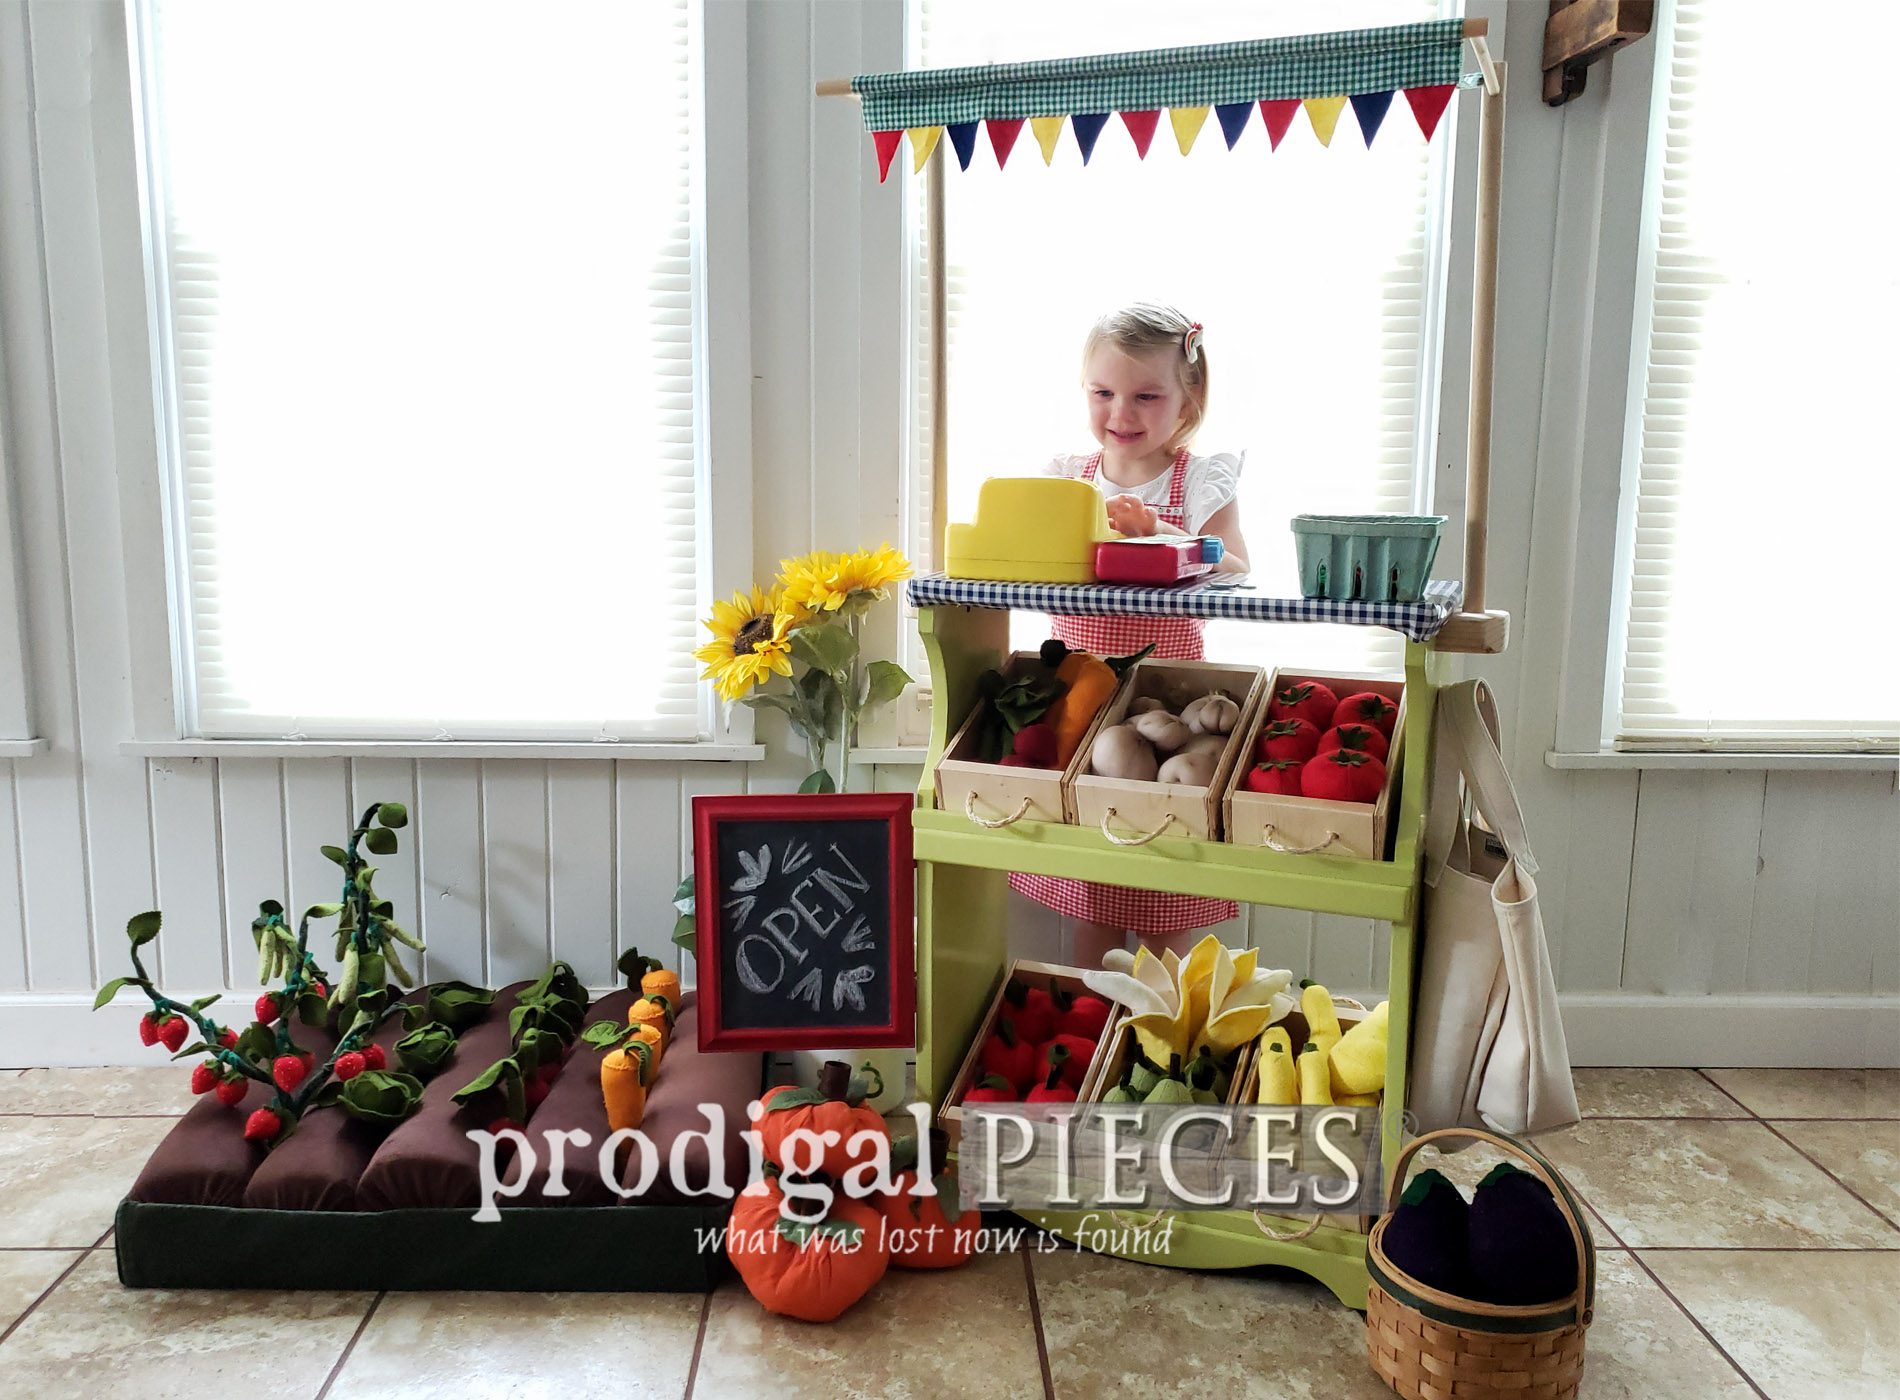 Featured Upcycled Bookcase Turned into Pretend Play Farmers' Market by Larissa of Prodigal Pieces | prodigalpieces.com